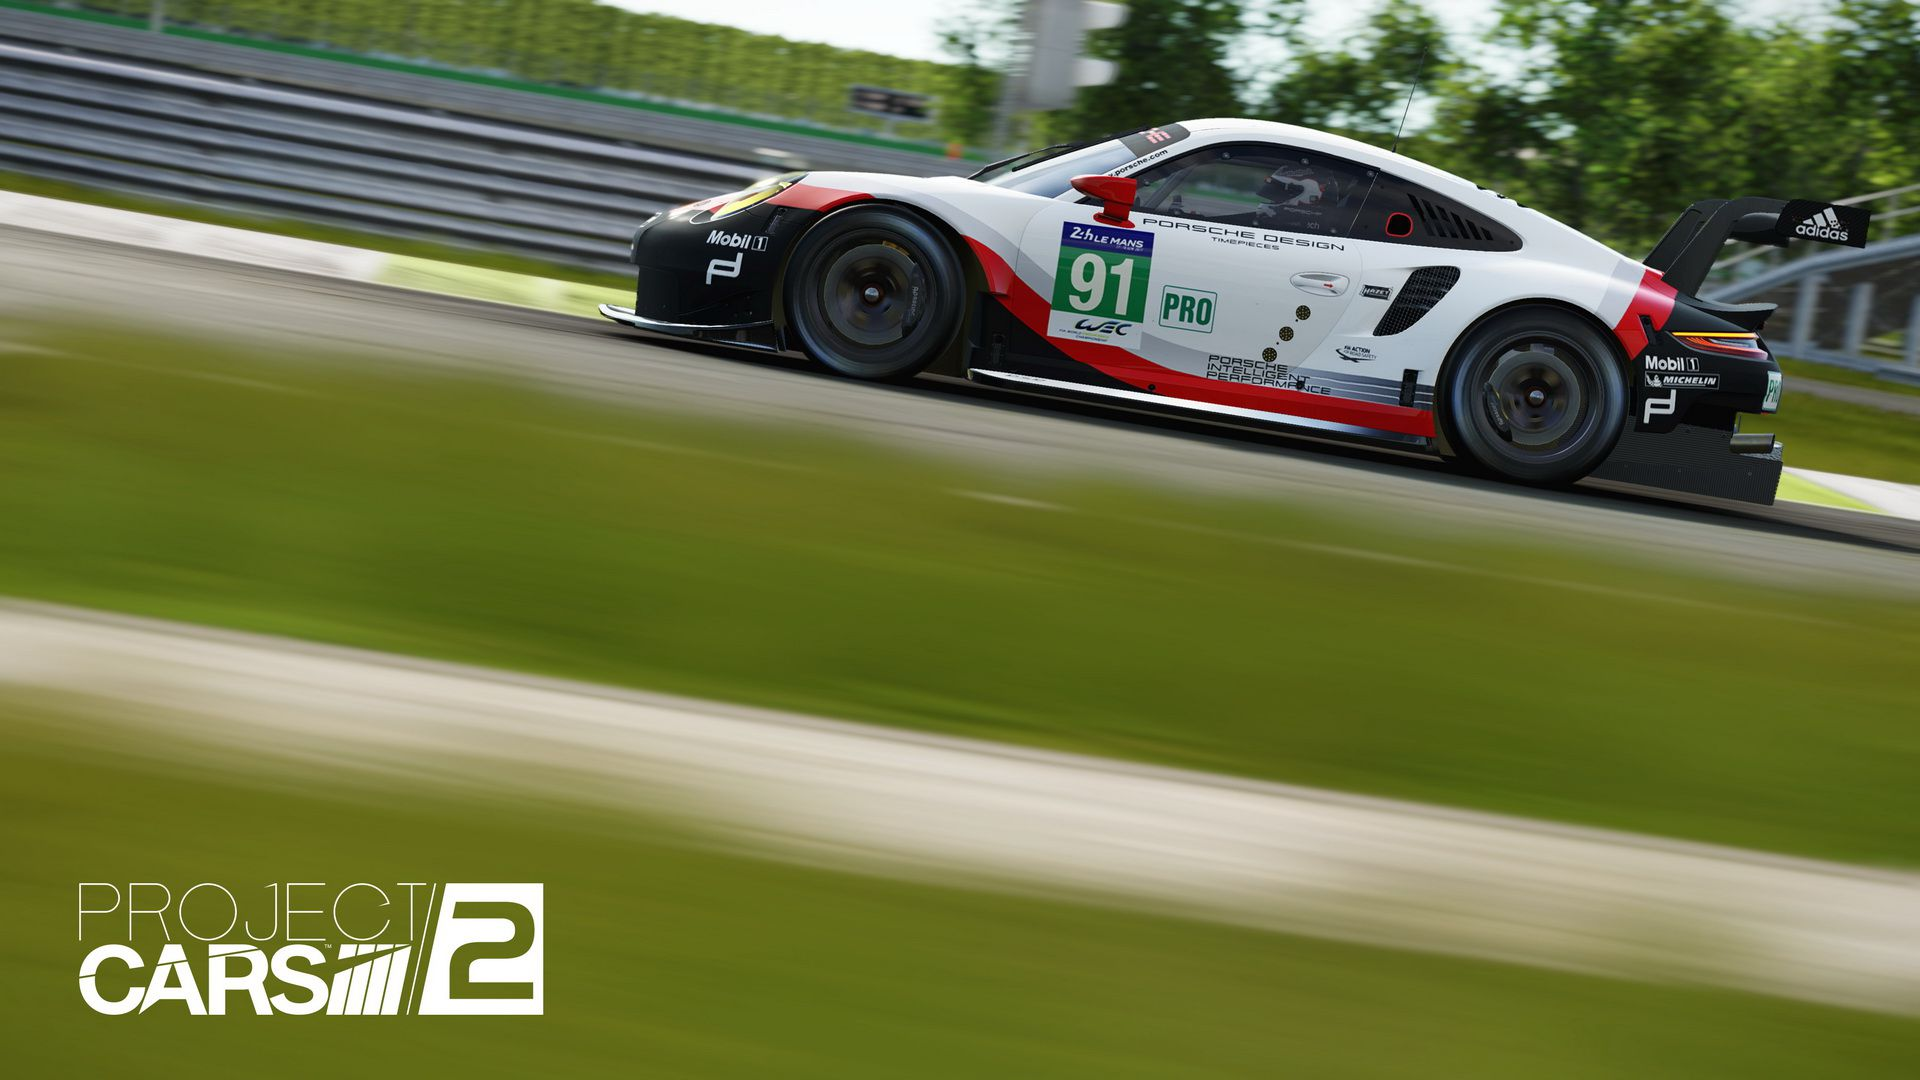 Project Cars Carriere Dlc